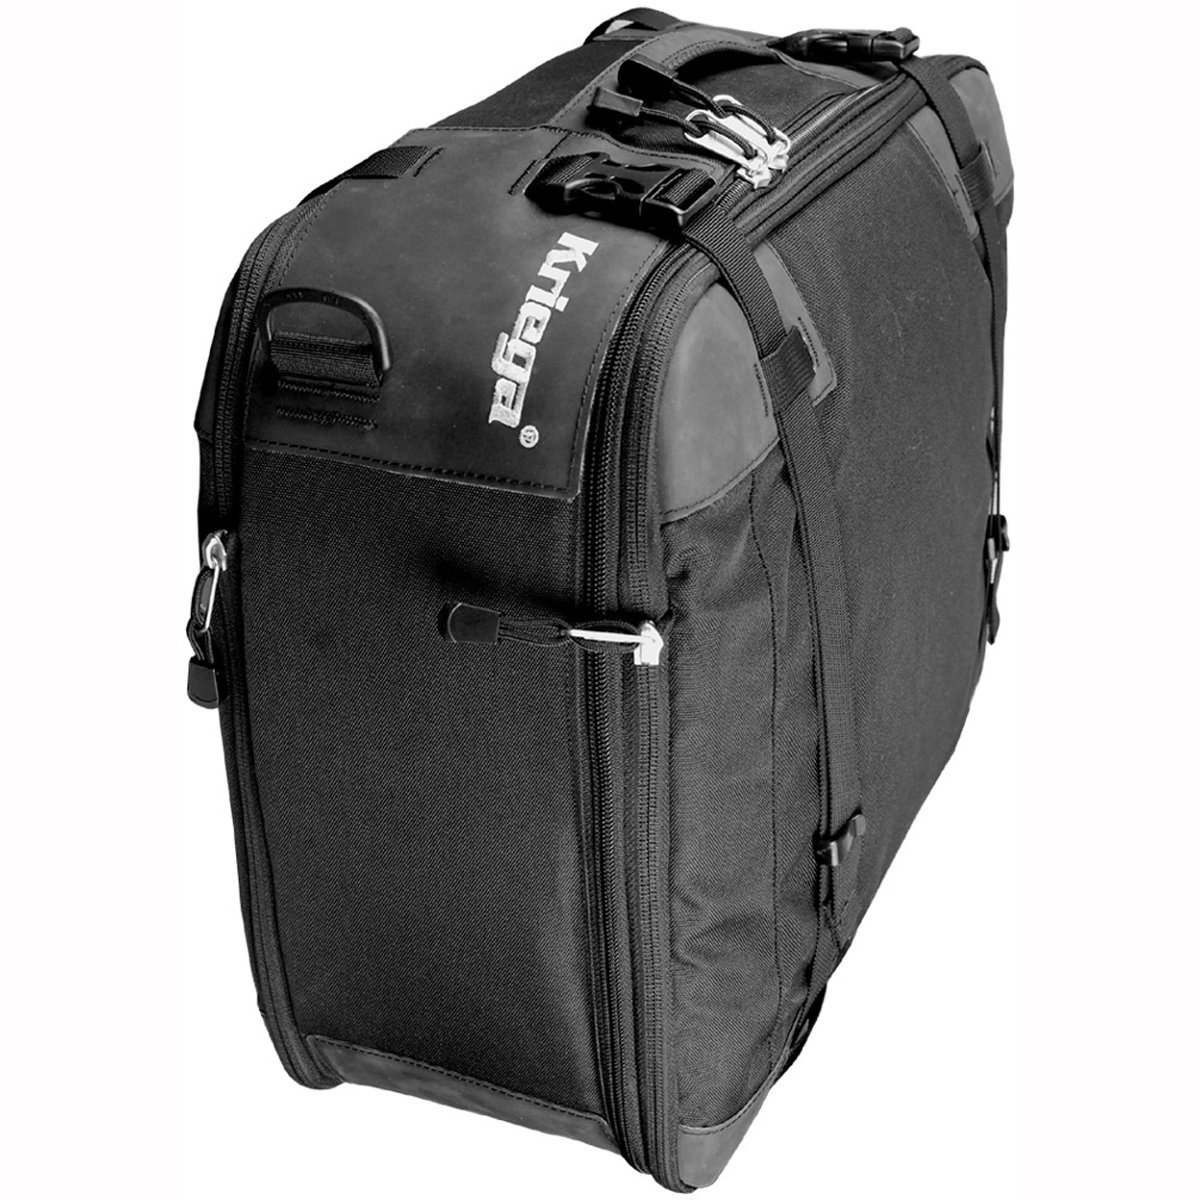 Kriega Travel Bag KS40, Pannier